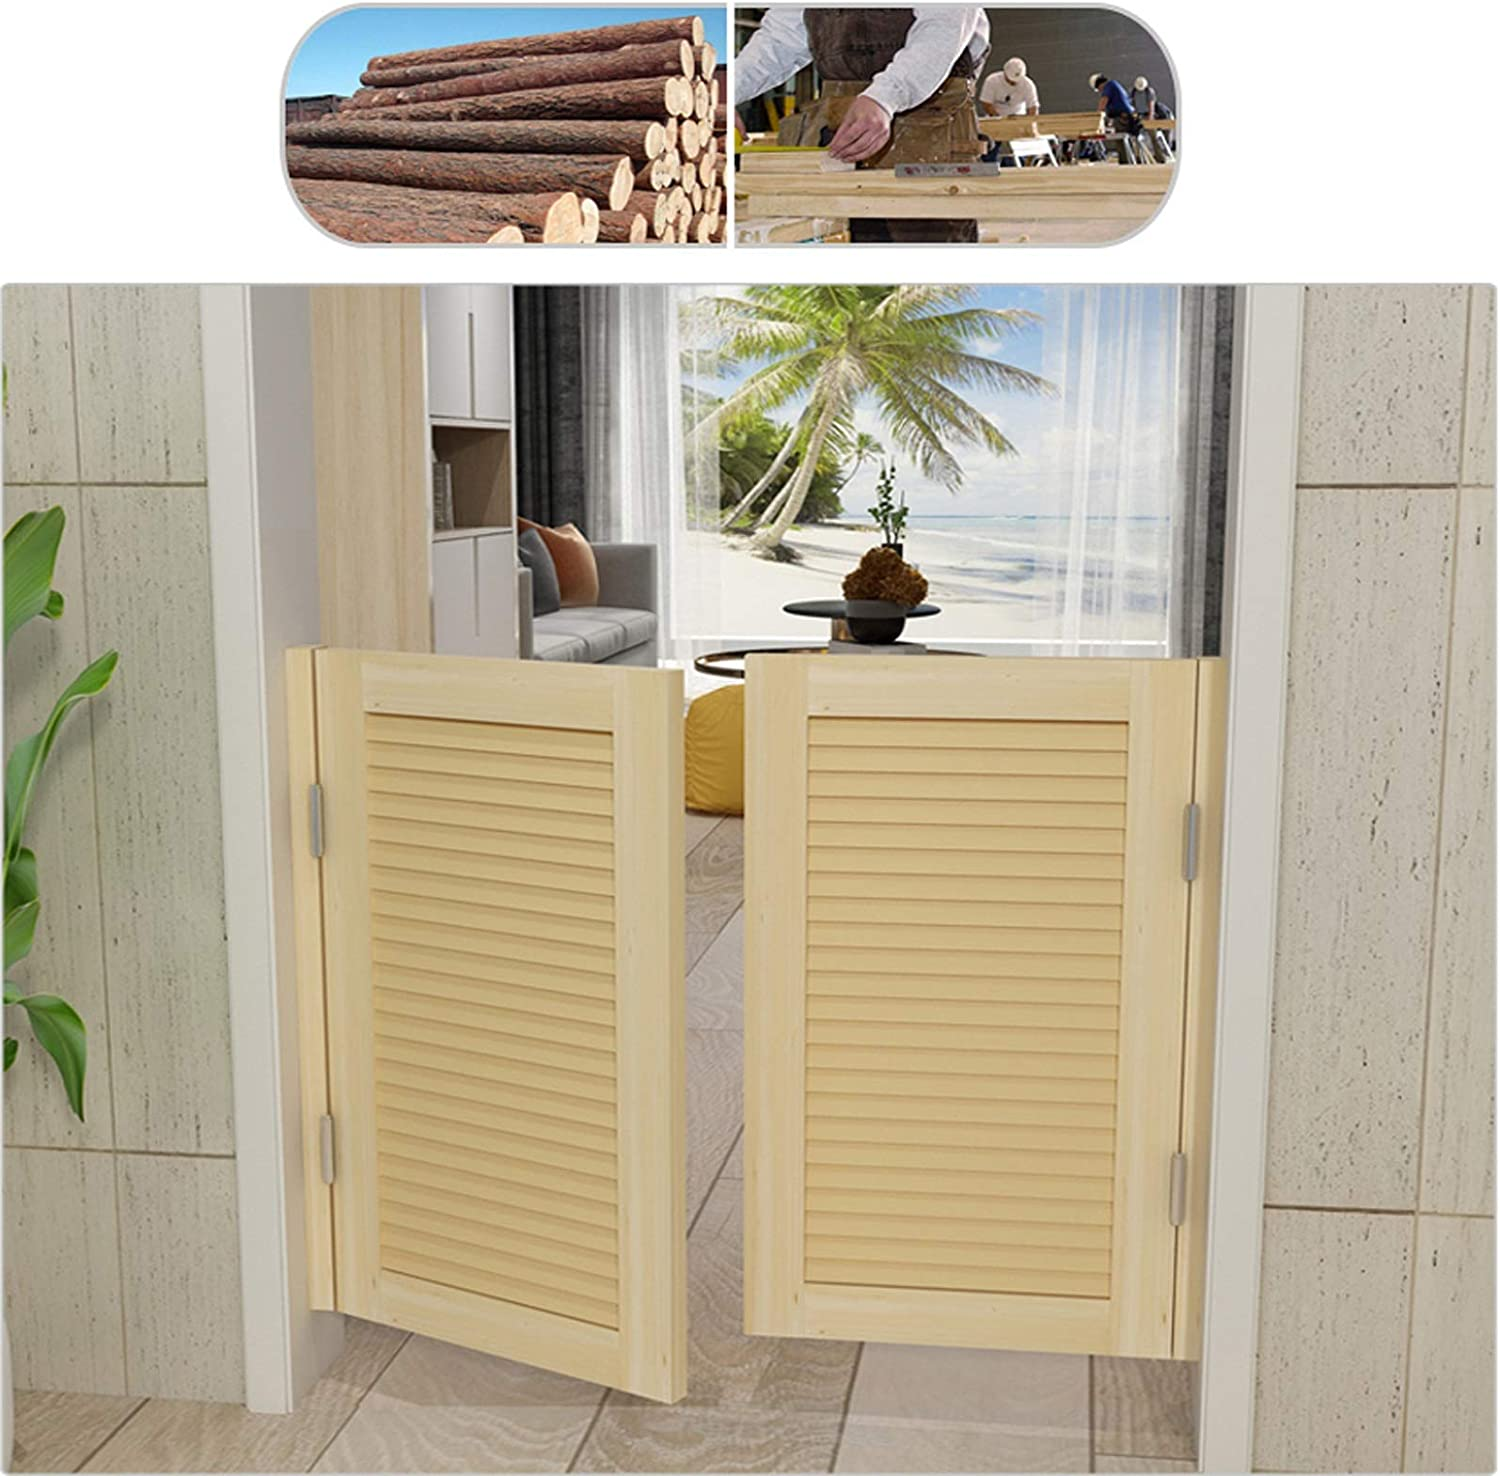 Unfinished Saloon Swinging Door Fresno Mall Cafe Wood Do Solid Louvered Cheap sale